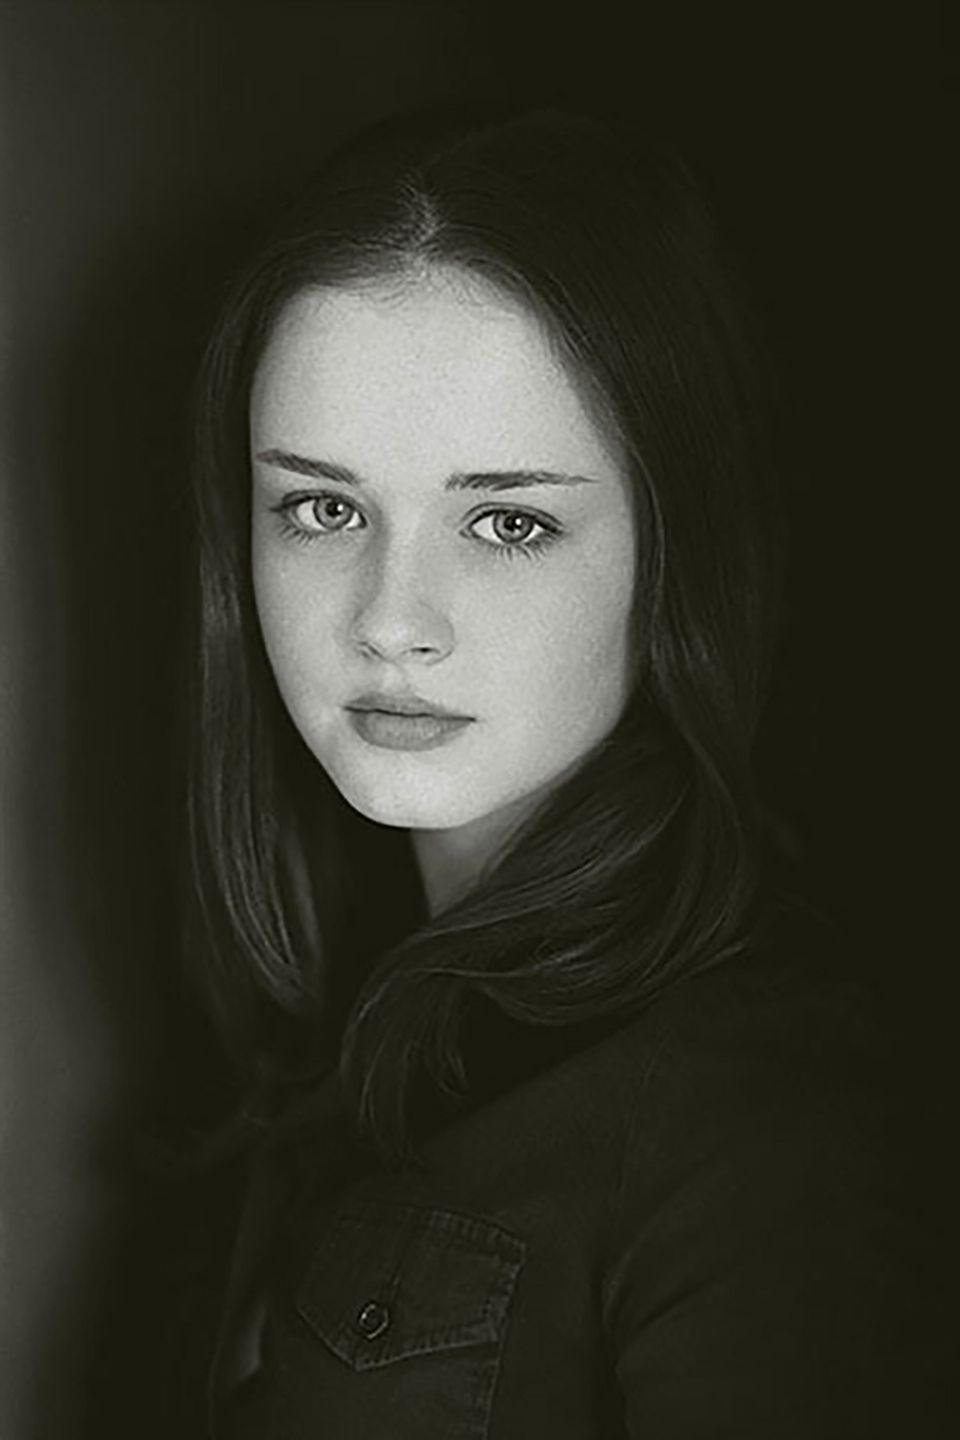 "<p>When a then-19-year-old Alexis auditioned for <em>Gilmore Girls</em>, she had no prior experience on screen. Despite her inexperience, there was something about her that made Warner Bros. cast her as one half of the Gilmore duo. ""She just jumped off the screen, you know. Those blue eyes,"" casting director Julie Mossberg described in an interview with <a href=""https://www.vanityfair.com/hollywood/2016/11/gilmore-girls-lauren-graham-alexis-bledel-casting-interviews"" rel=""nofollow noopener"" target=""_blank"" data-ylk=""slk:Vanity Fair"" class=""link rapid-noclick-resp""><em>Vanity Fair</em></a>.</p>"